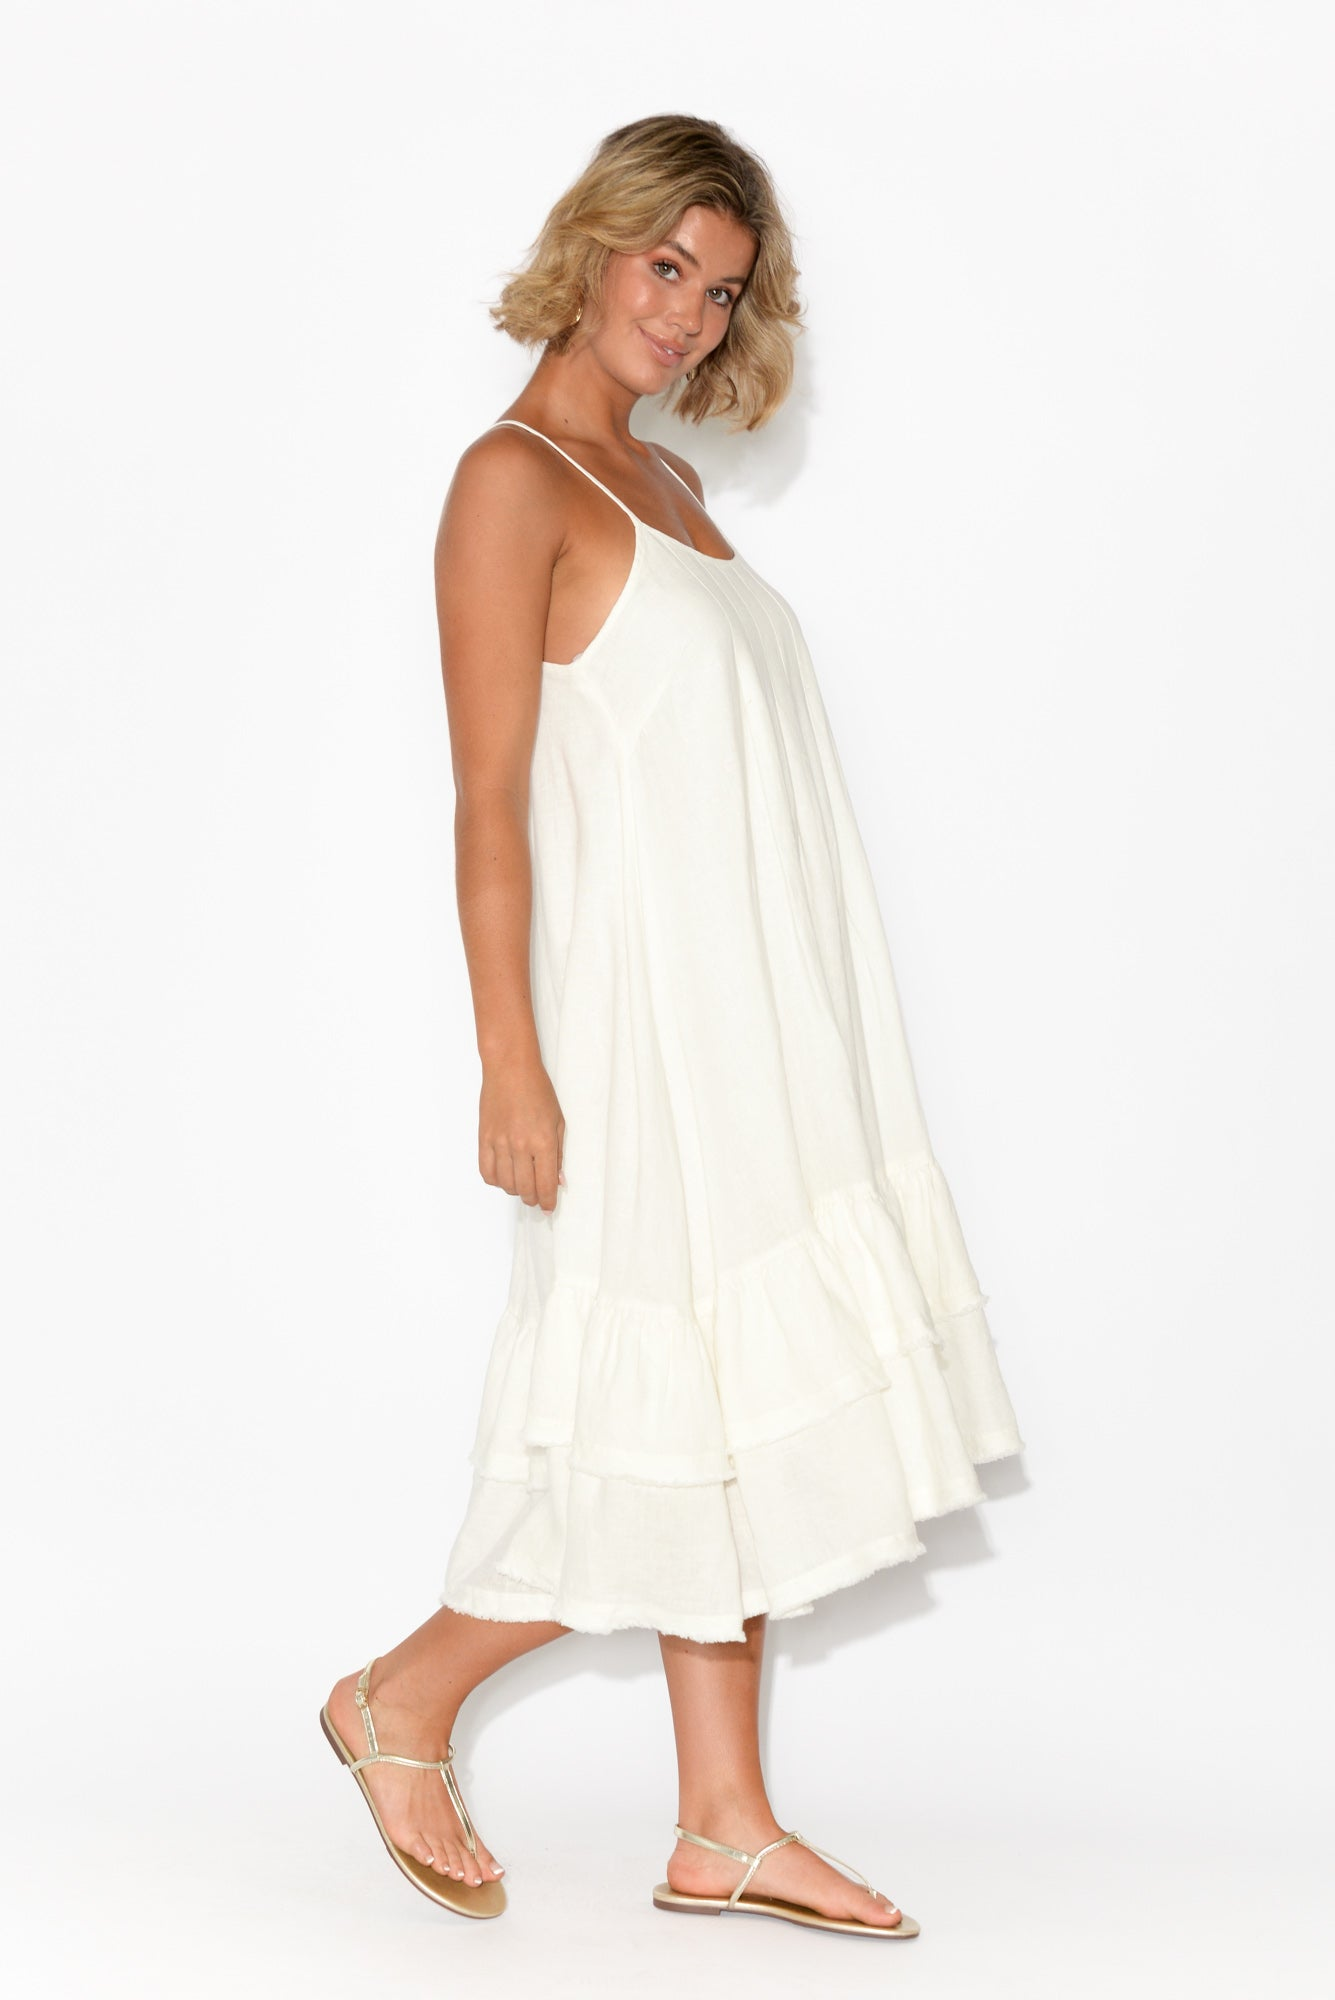 Potenza White Linen Ruffle Dress